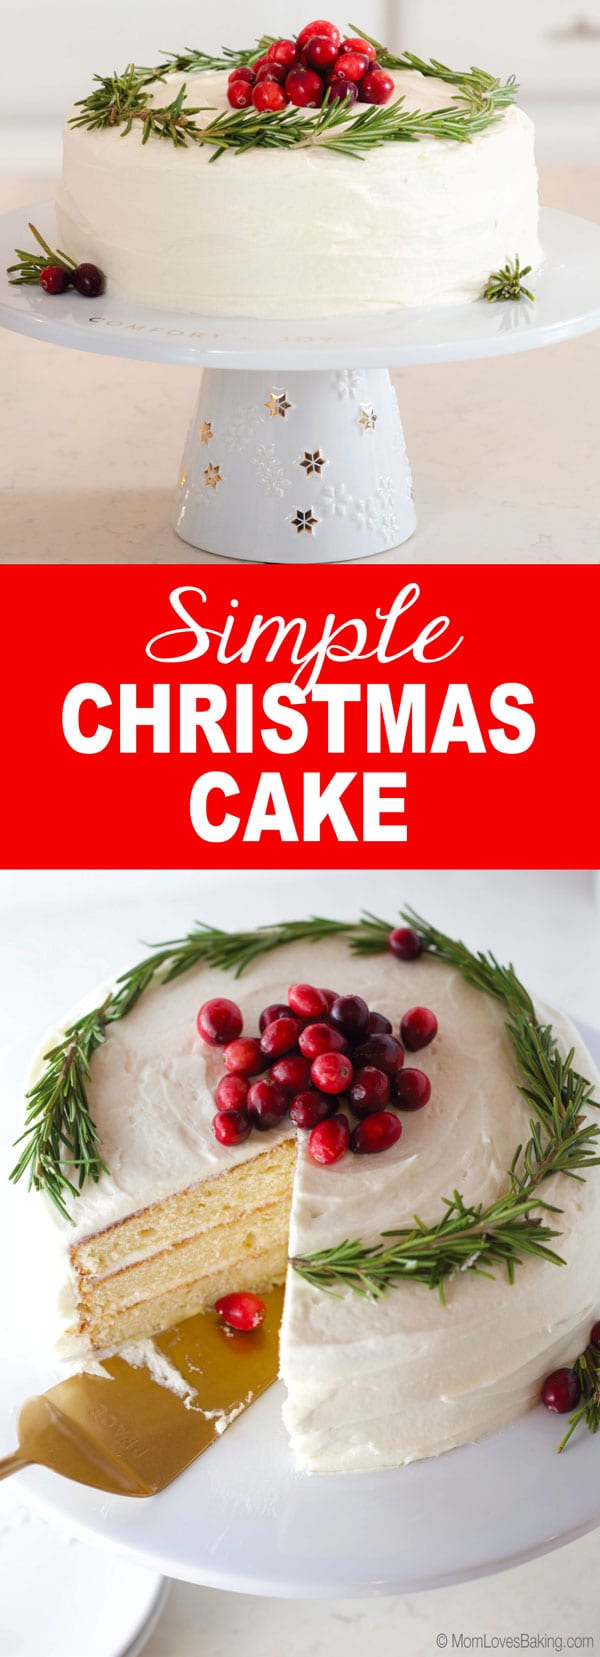 Simple Christmas cake long pin image